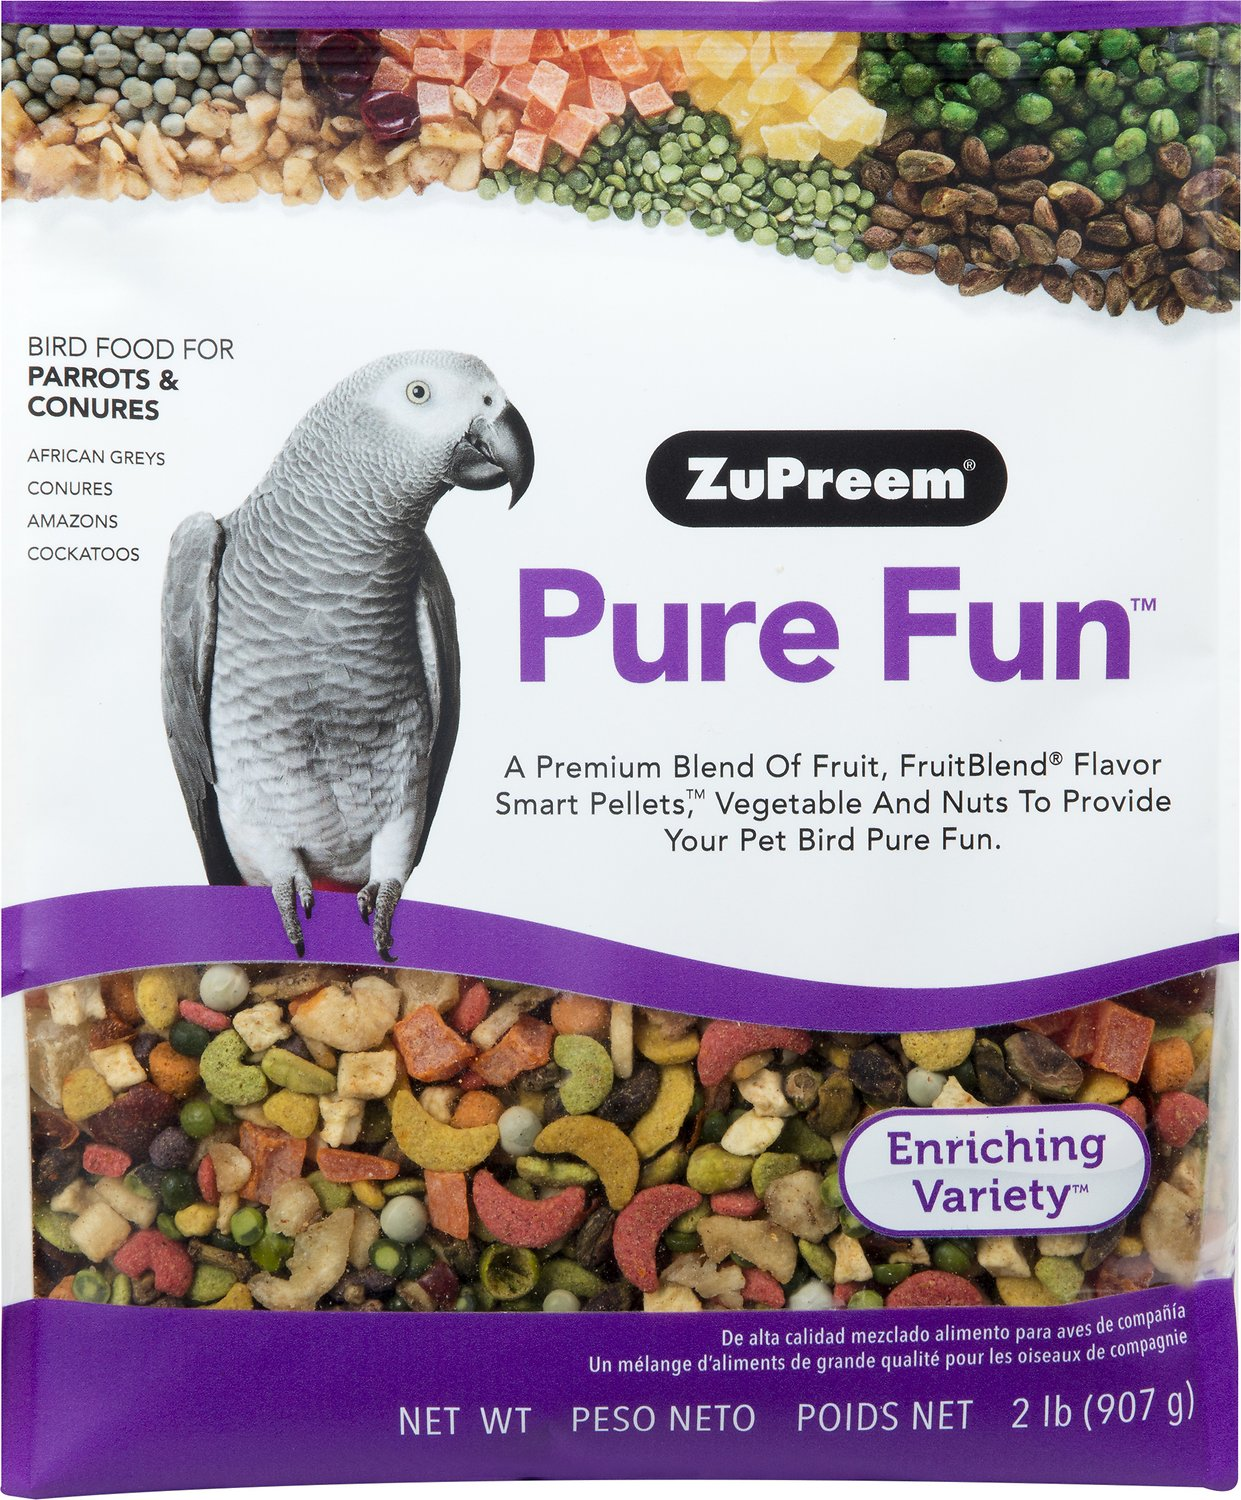 ZuPreem Pure Fun Enriching Variety Parrots & Conures Bird Food Image